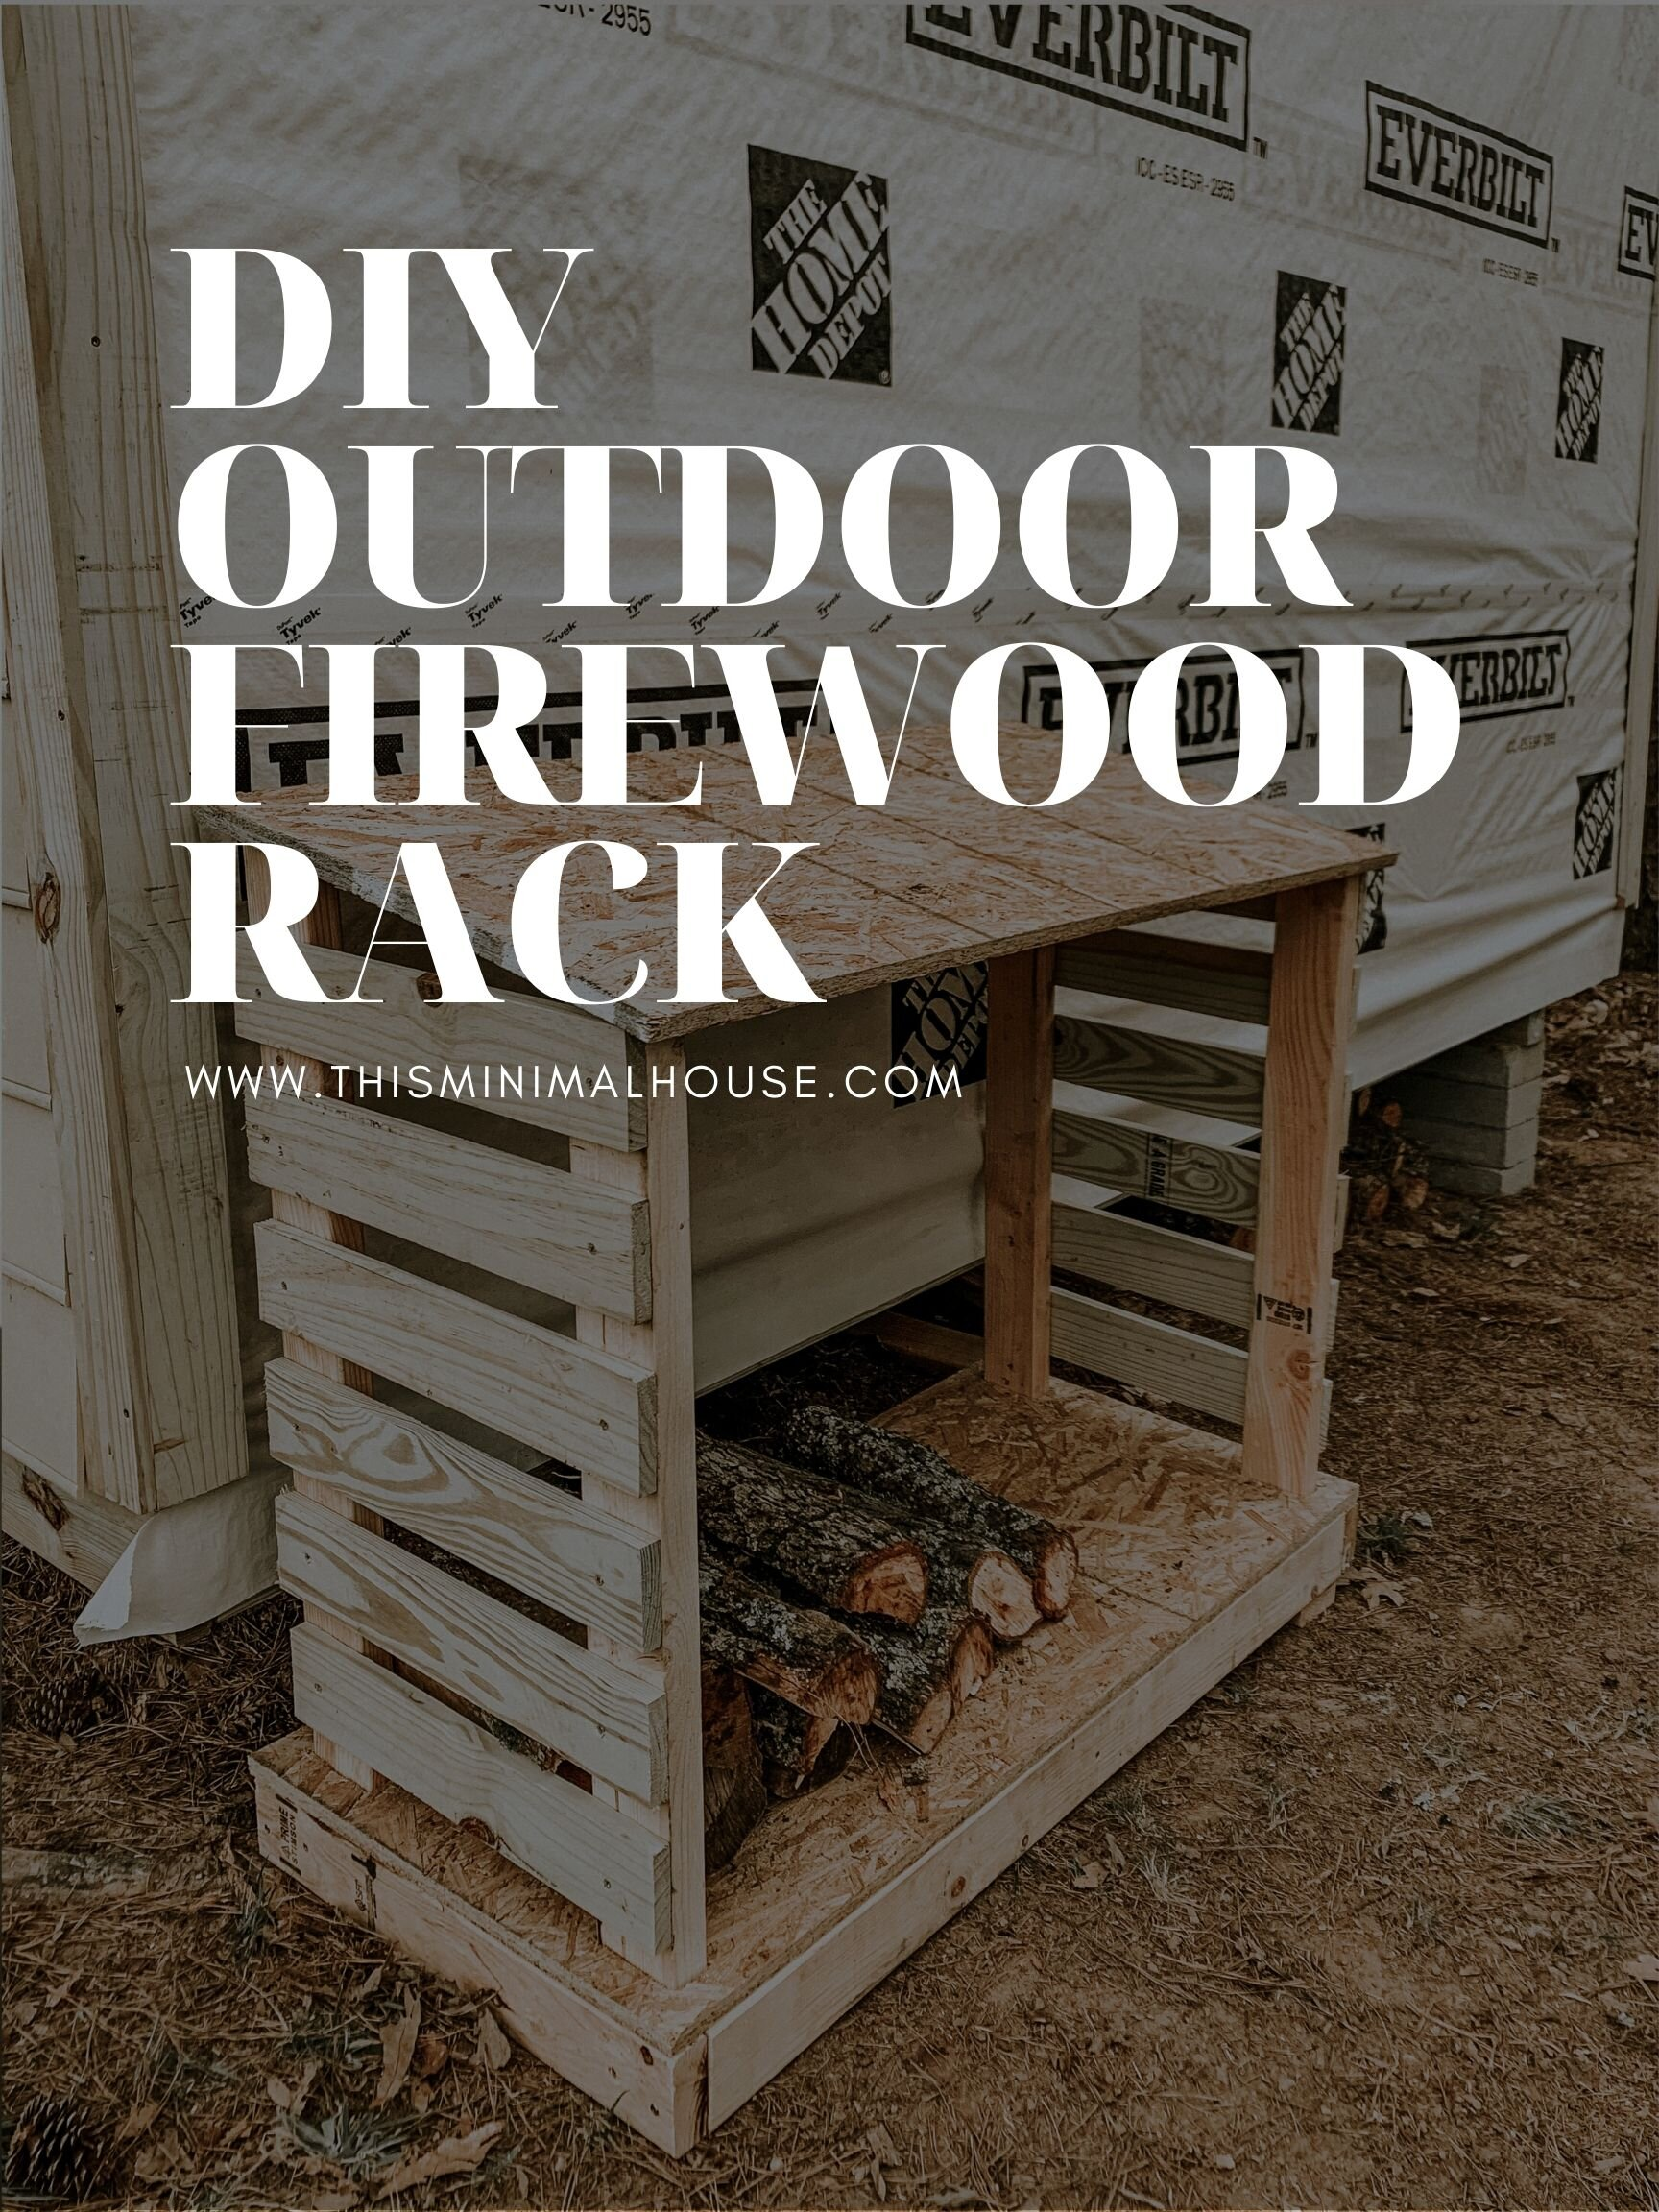 DIY OUTDOOR FIREWOOD RACK